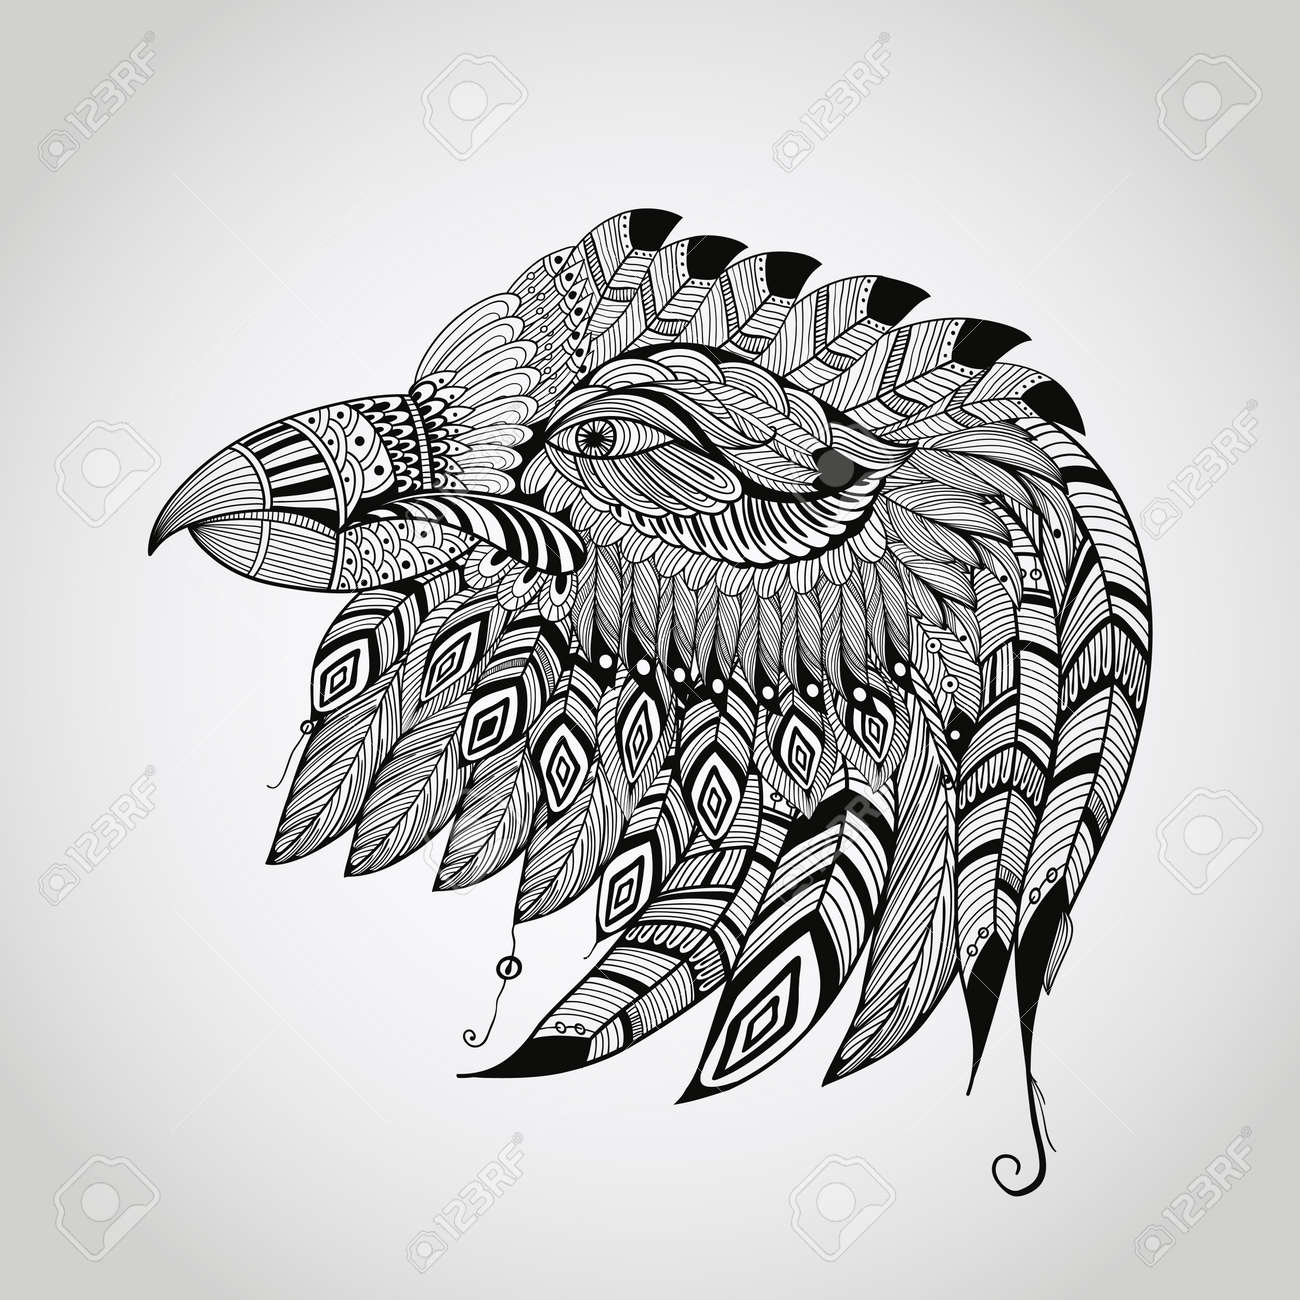 Native american eagle symbol tattoo images for tatouage native american eagle symbol tattoo with regard to vector tattoo black hand drawn highly detailed biocorpaavc Gallery